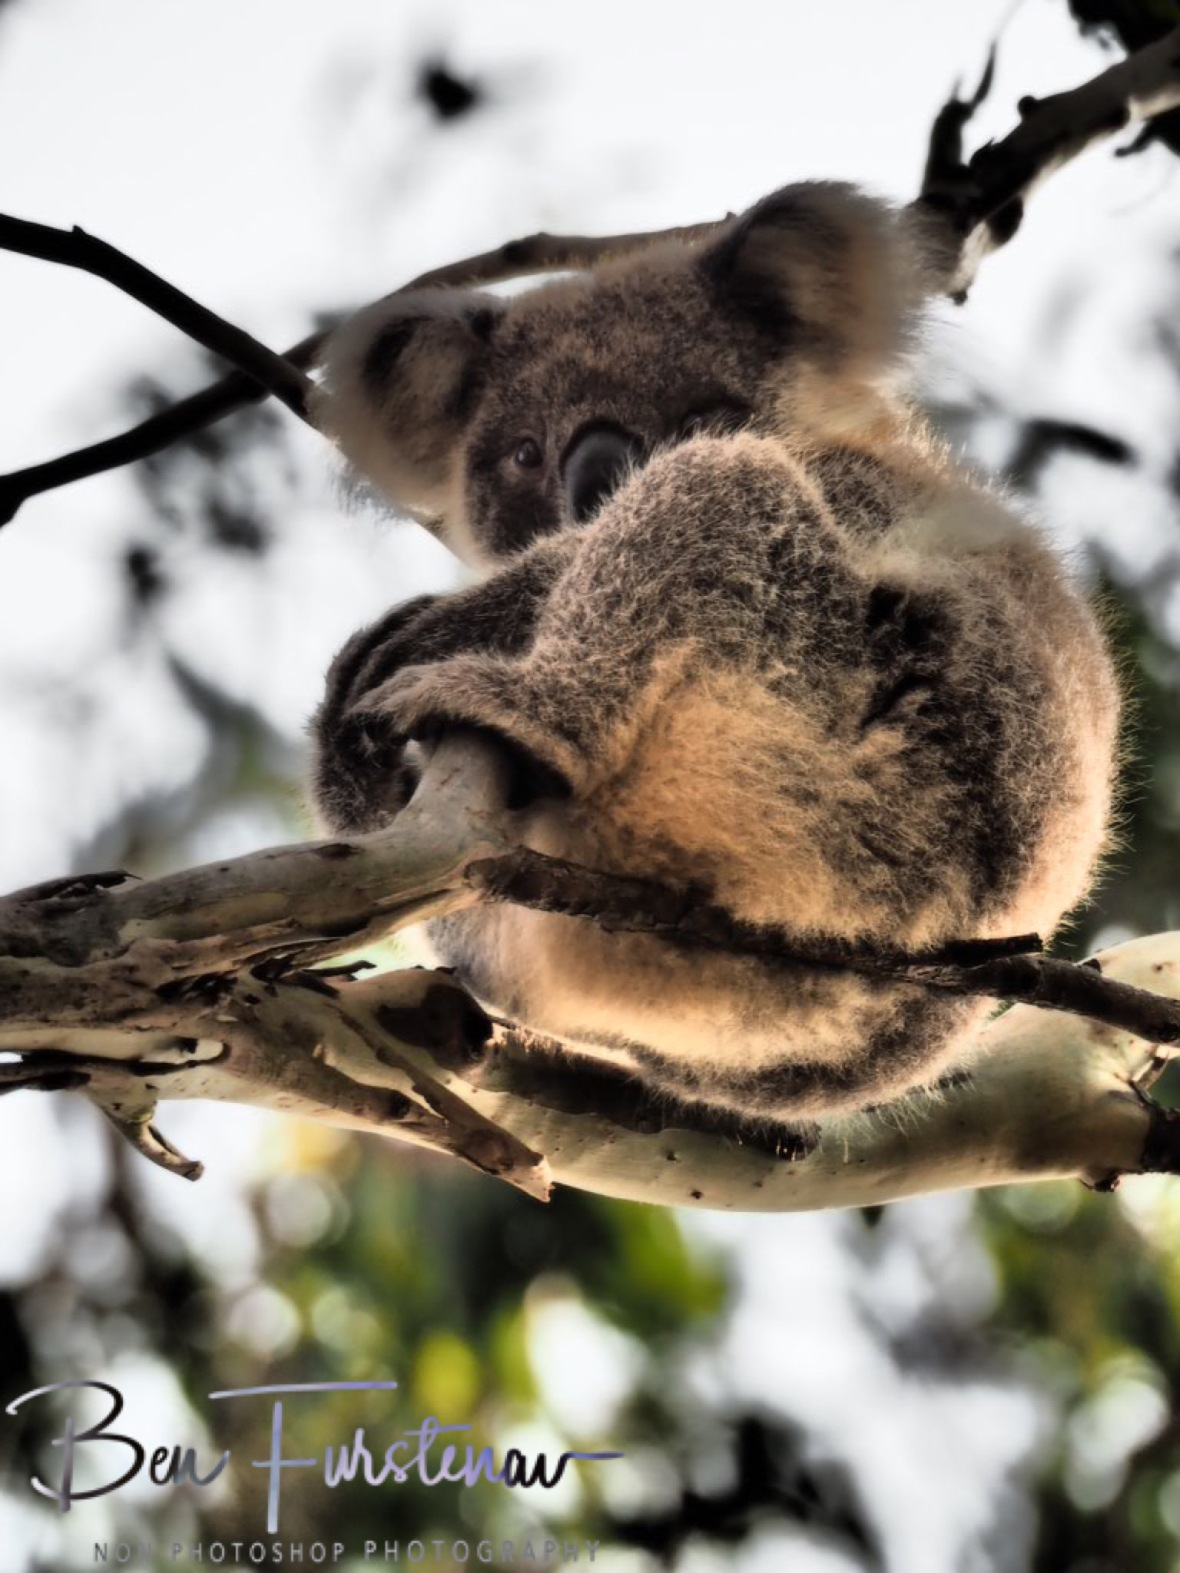 Cute but tired at Woodburn, Northern New South Wales, Australia